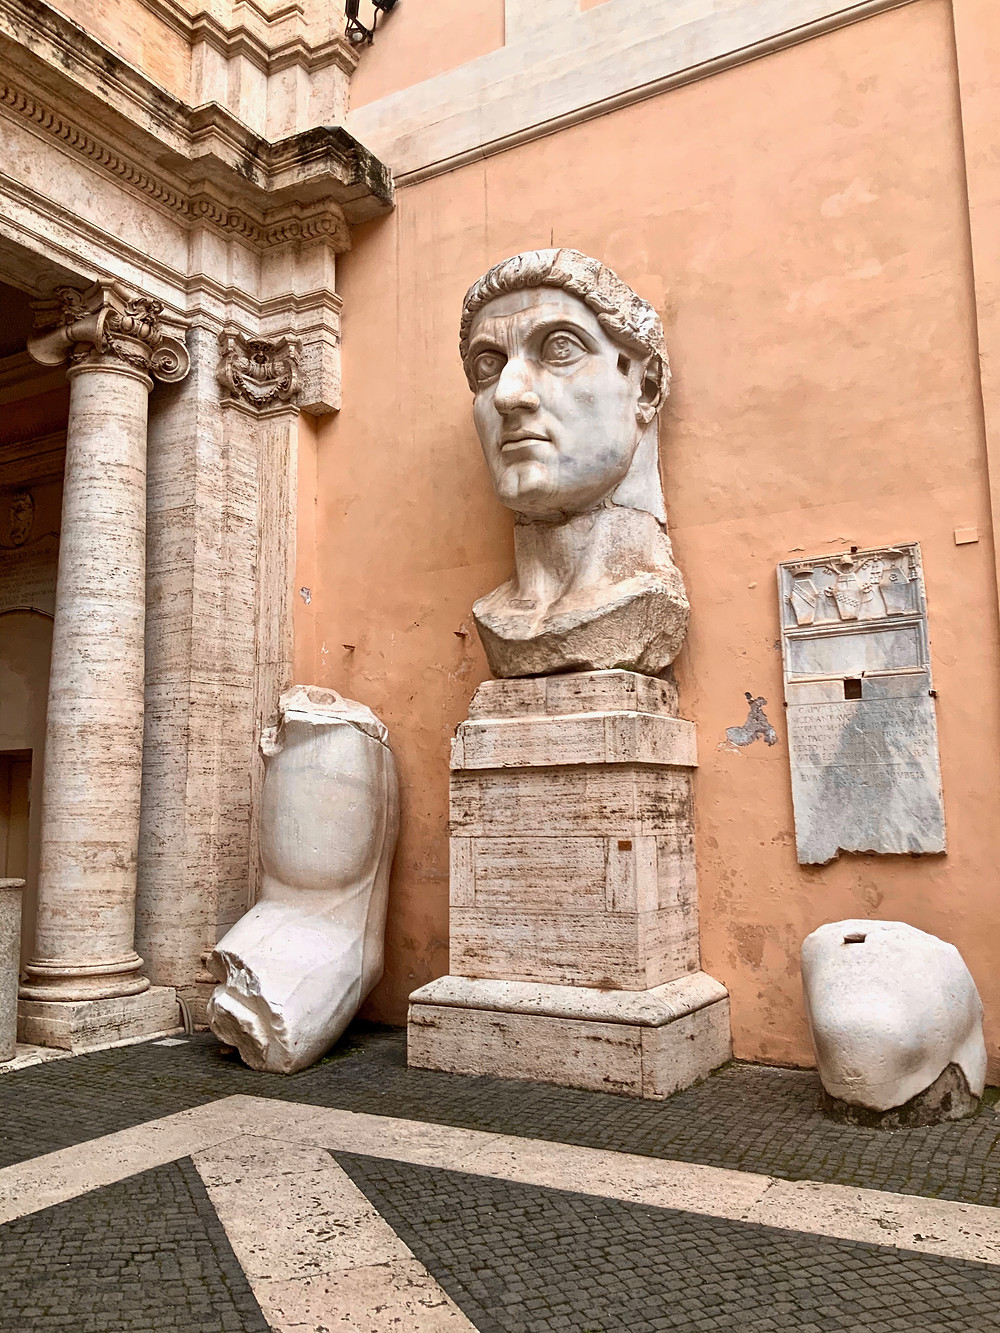 chunks of the Colossus of Constantine in the courtyard of the Capitoline Museums